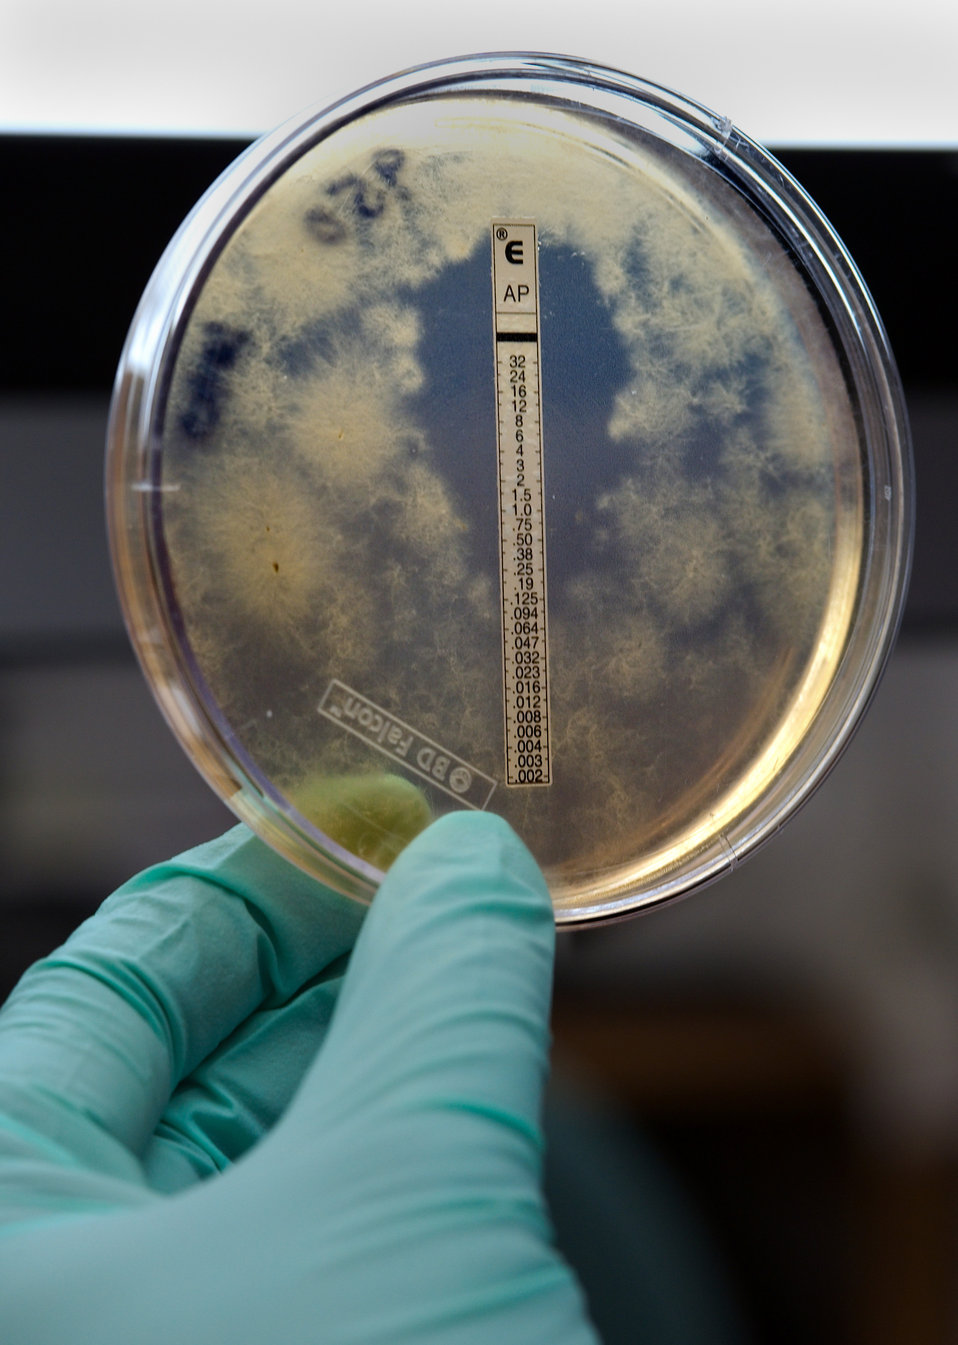 A slightly closer view than PHIL 15147, this photograph was captured during the Centers for Disease Control and Prevention's (CDC) multistate meningitis outbreak investigation. This culture plate revealed the results of a susceptibility test to the antifungal drug amphotericin B. The drug inhibited growth of the fungal organism Exserohilum in the clear area where the amphotericin B had diffused into the medium, while the Exserohilum organisms were growing elsewhere on the plate, where the drug had not diffused into the medium.